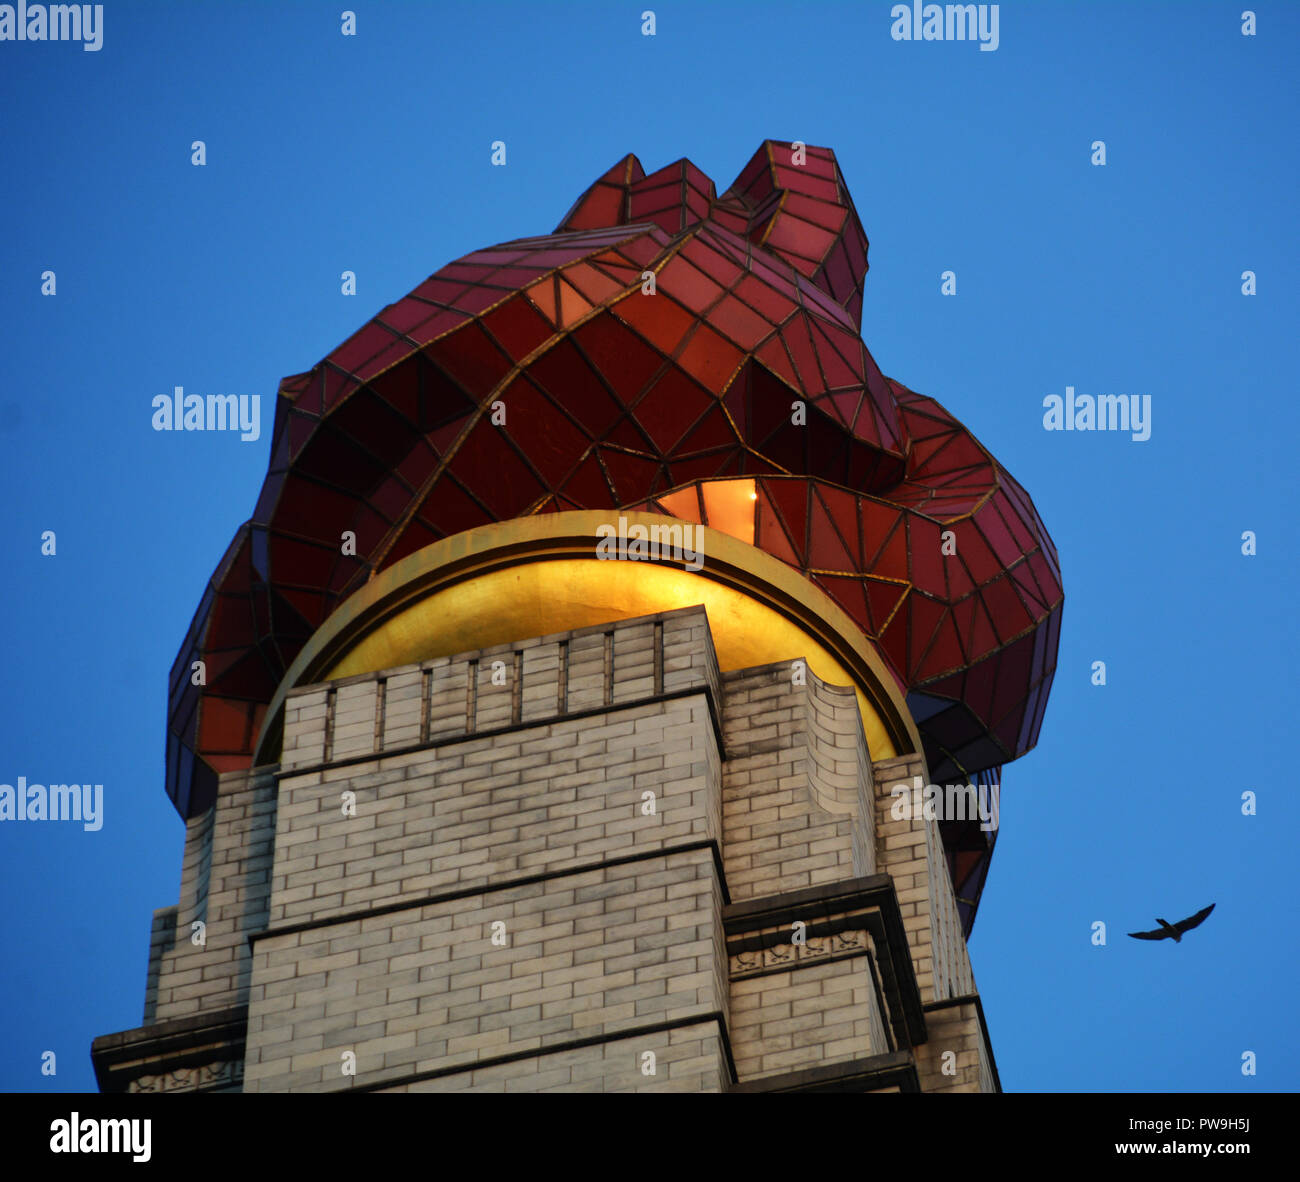 Glorious flame atop the Juche Tower, Pyongyang - Stock Image